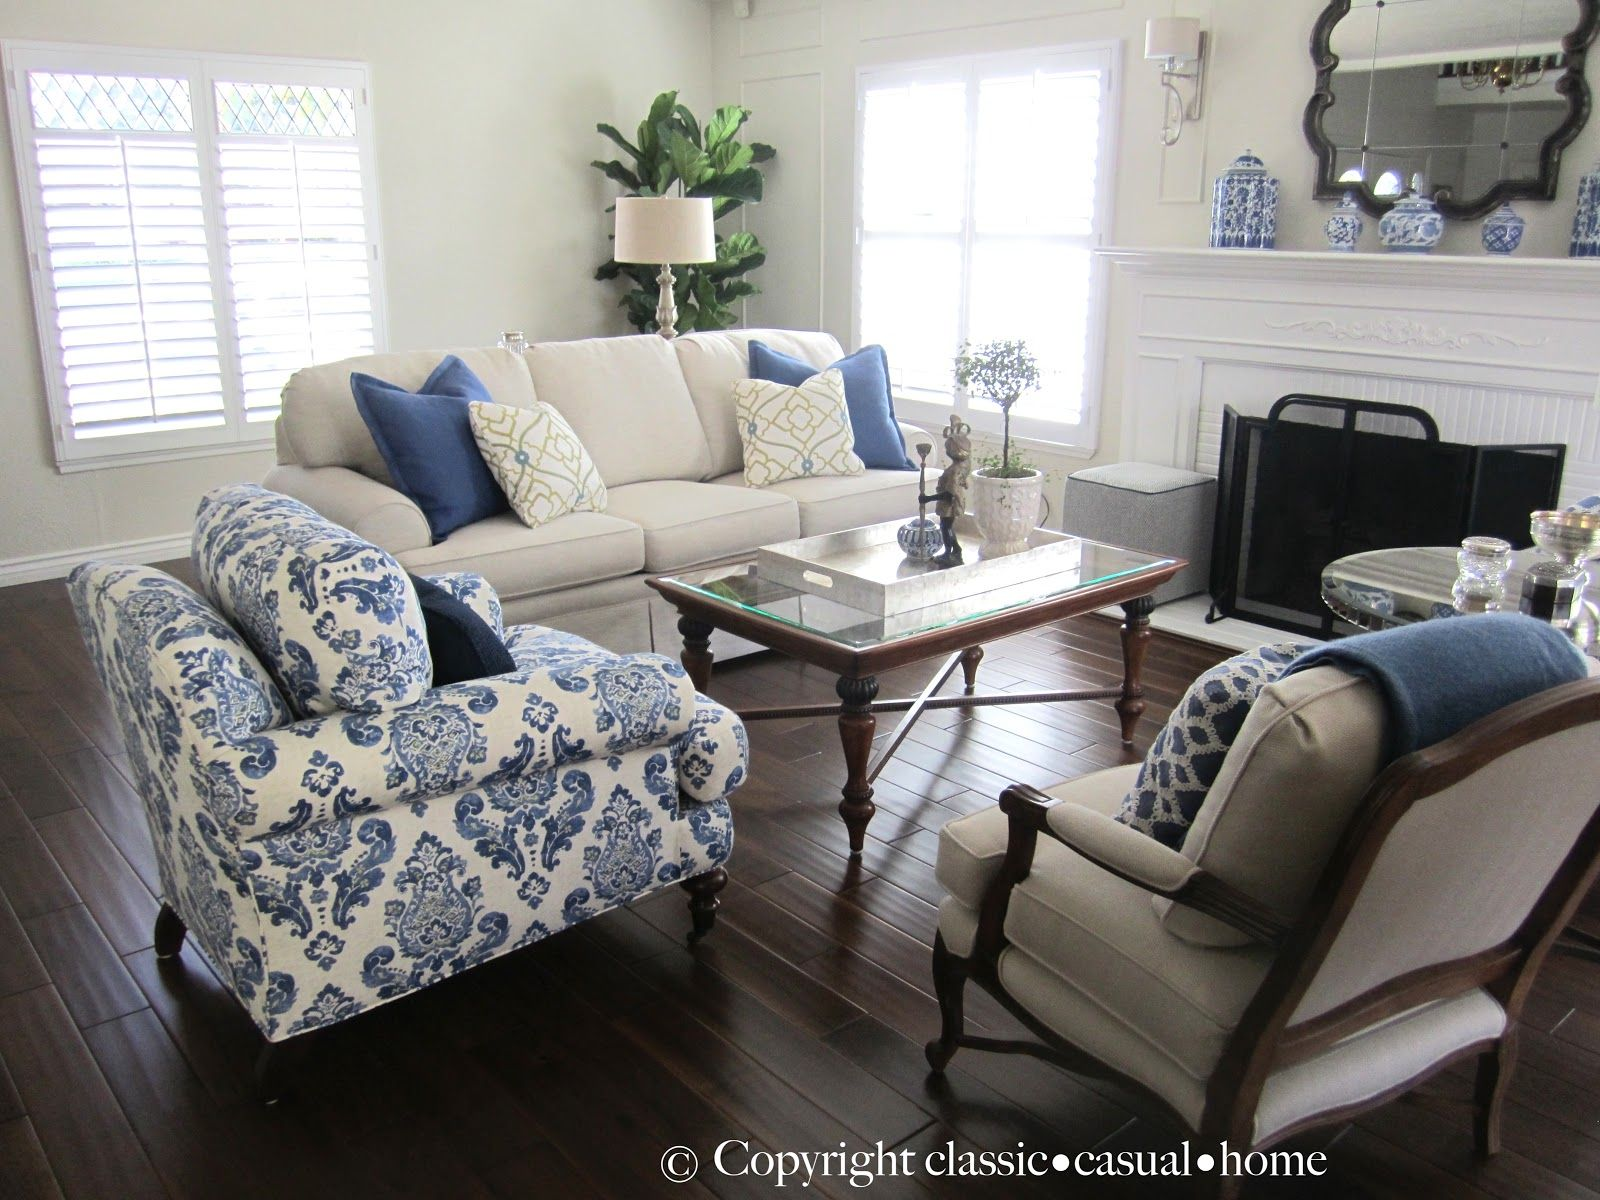 Best Classic • Casual • Home With Images Blue And White 400 x 300